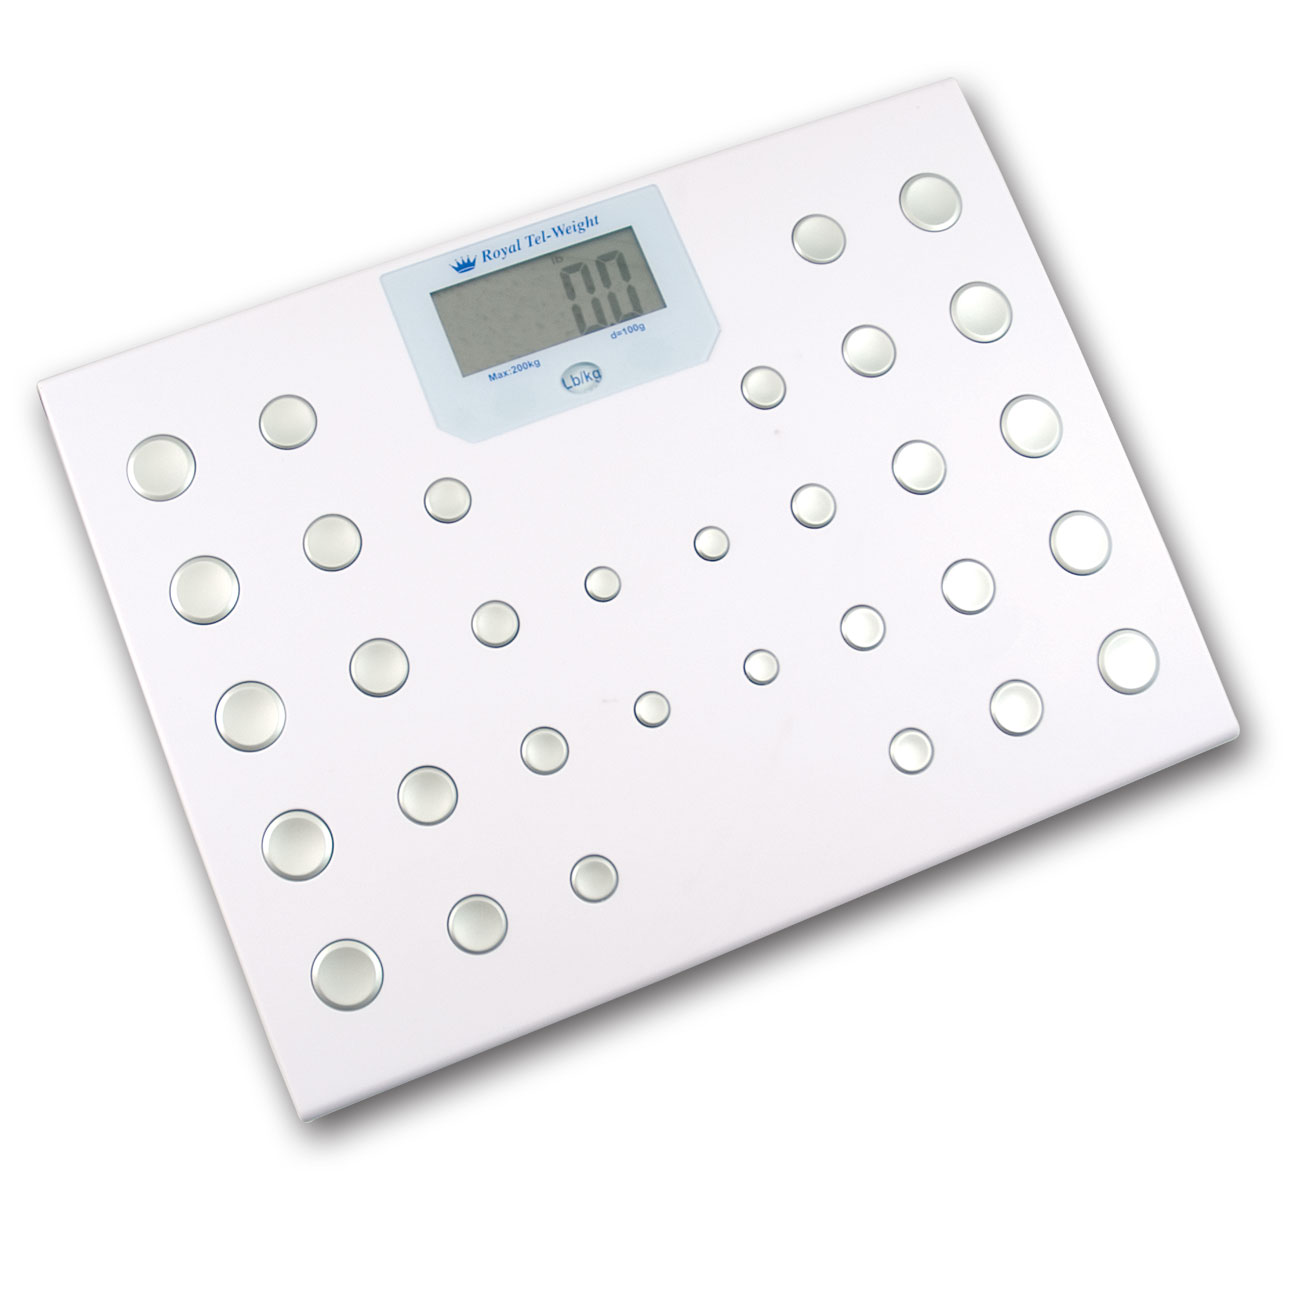 Talking Bath Scale-English-Spanish - 440-lb Capacity